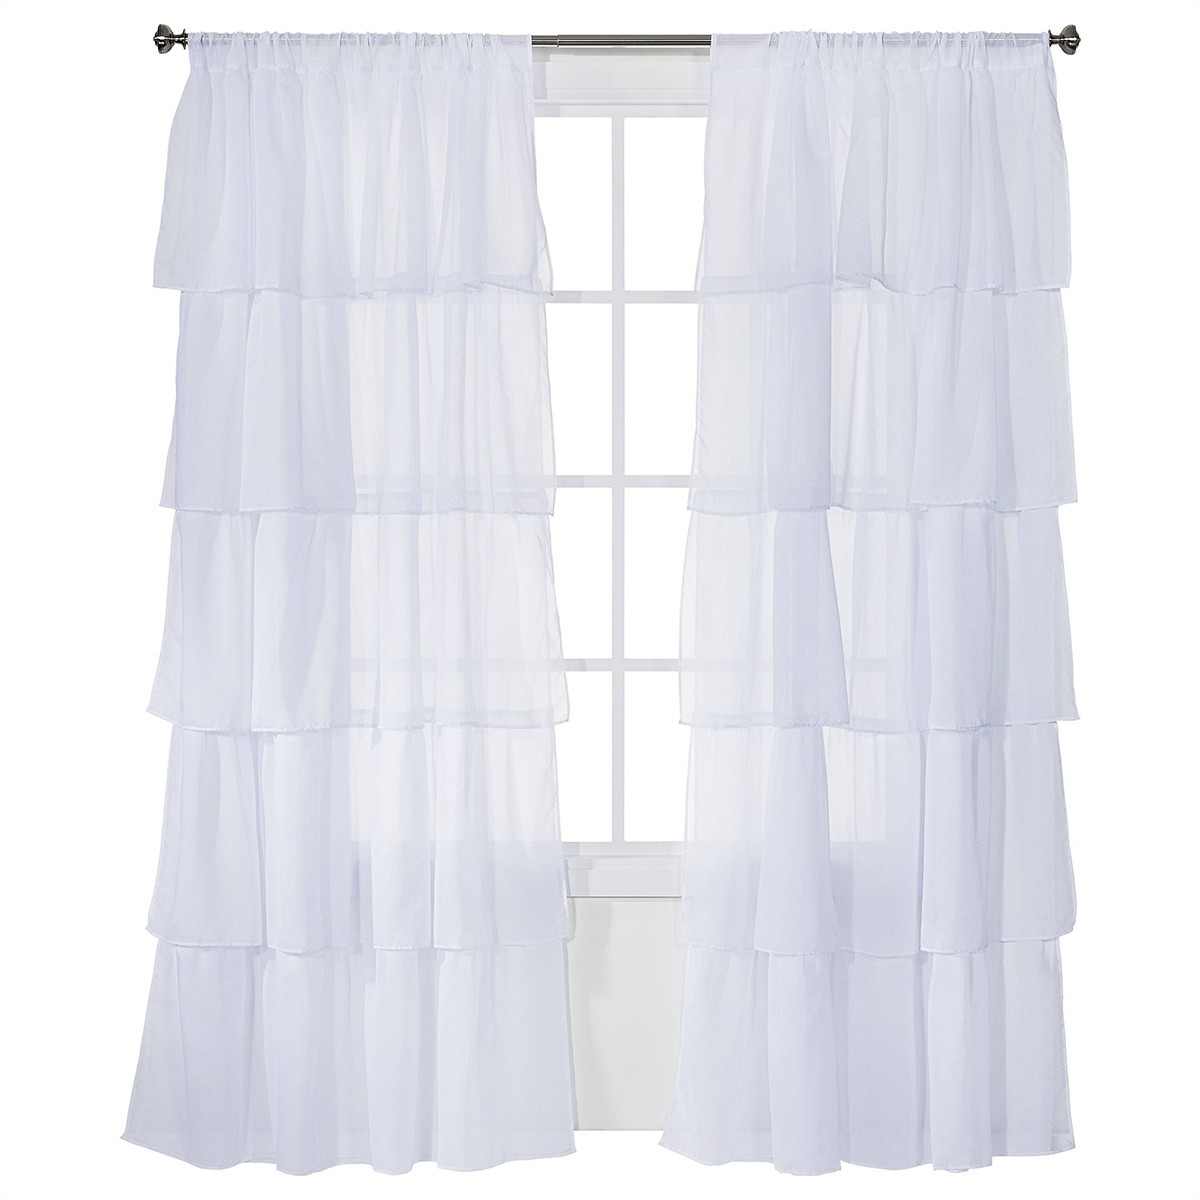 Sheer, white curtain panels with ruffles photo